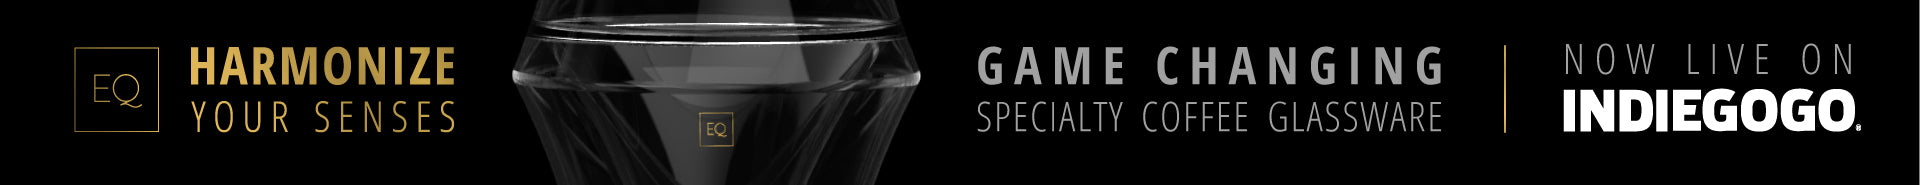 EQ | Harmonize Your Senses | Game Changing Specialty Coffee Glassware | Coming Soon To Indiegogo